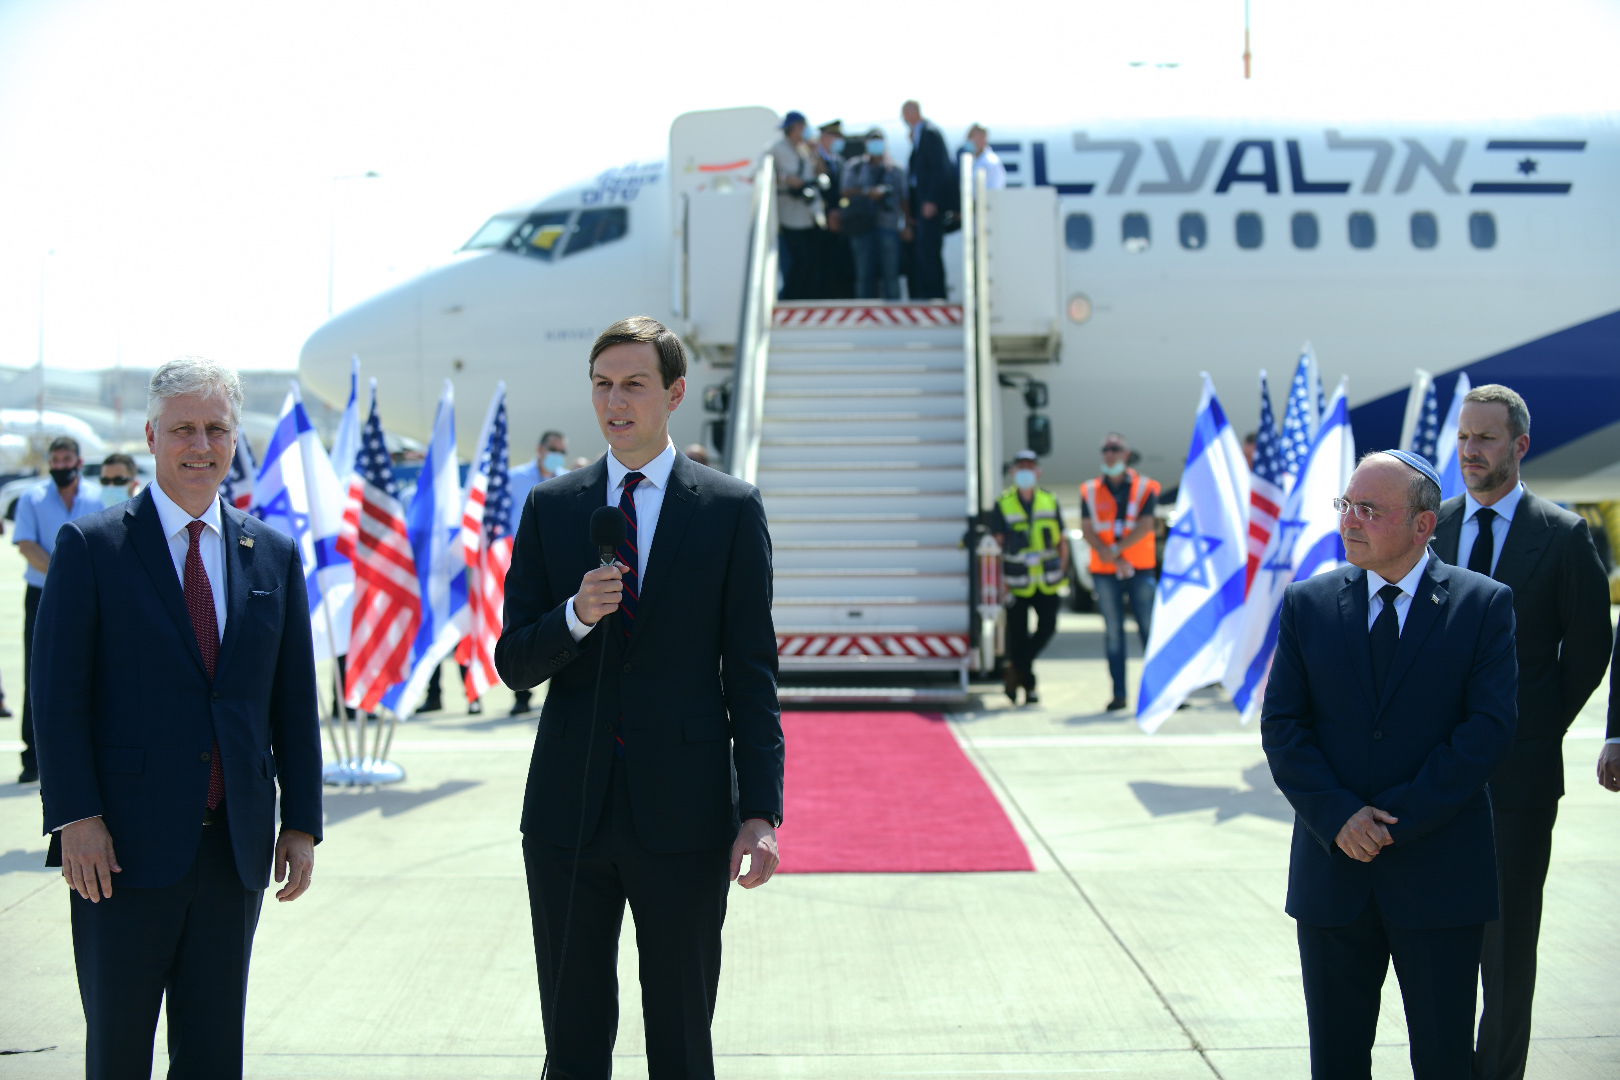 U.S. Presidential Adviser Jared Kushner, National Security Adviser Robert OBrien, and members of the US-Israeli delegation attend a ceremony ahead of their departure from Tel Aviv to Abu Dhabi, at the Ben-Gurion Airport near Tel Aviv, August 31, 2020. (Tomer Neuberg/Flash90)